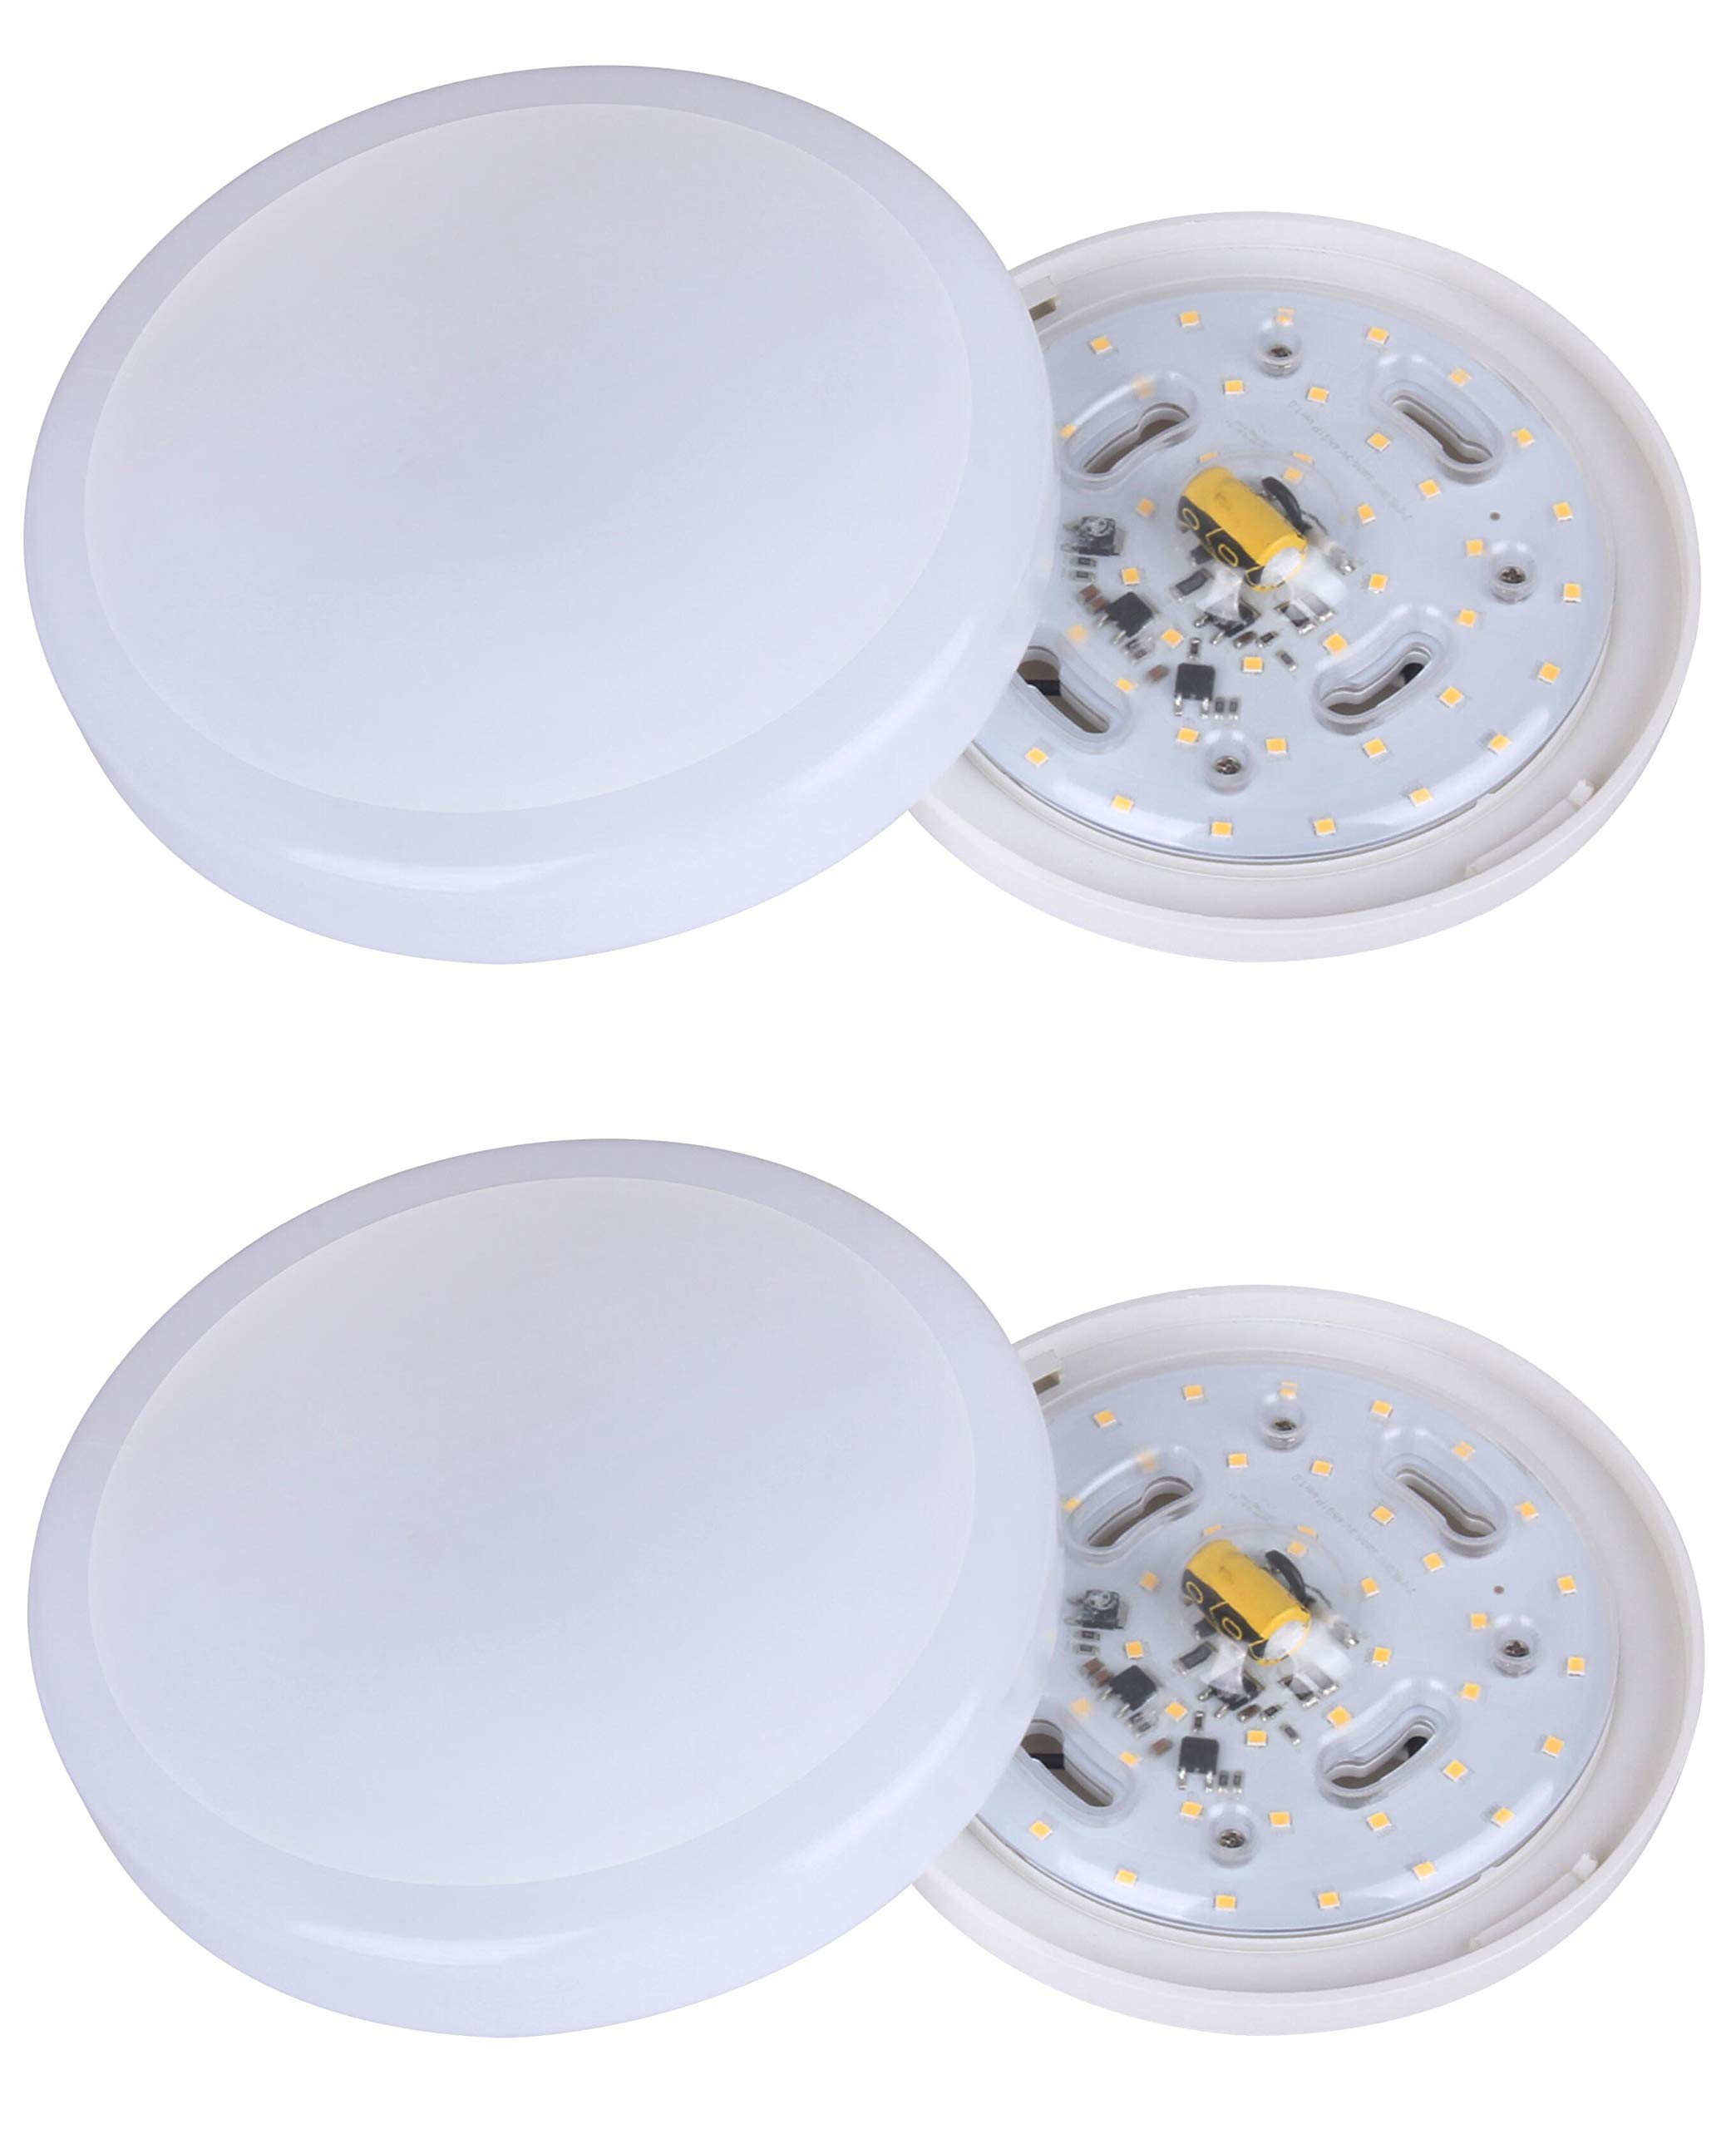 CORAMDEO 7 inch LED Flush Mount Ceiling Light Fixture, 11W Replace 75W, 800 Lumen, Dimmable, ETL/ES Rated, 2-Pack